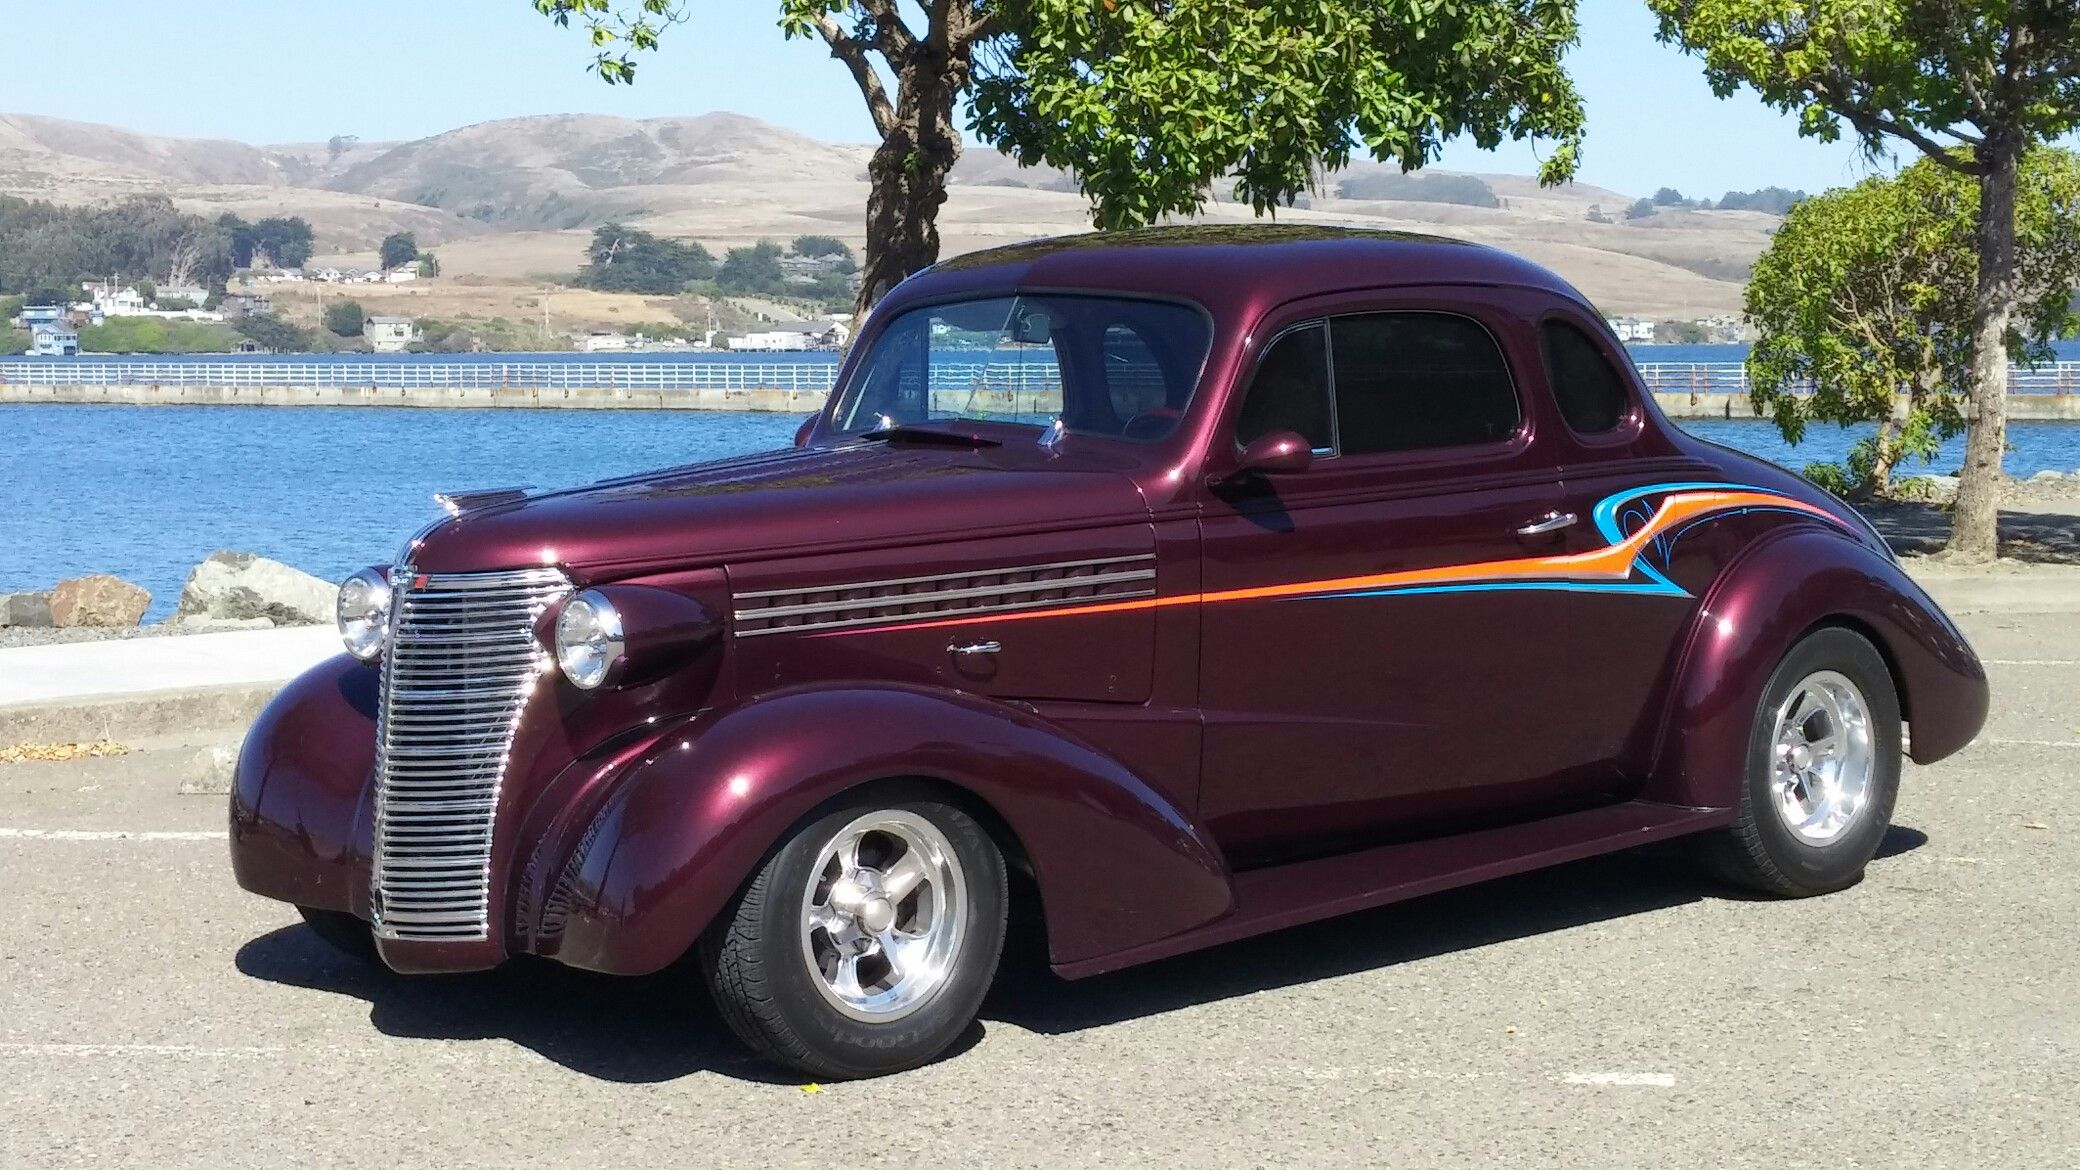 38 chevy coupe | Cars cars and more cars | Cars, Chevy, Classic cars